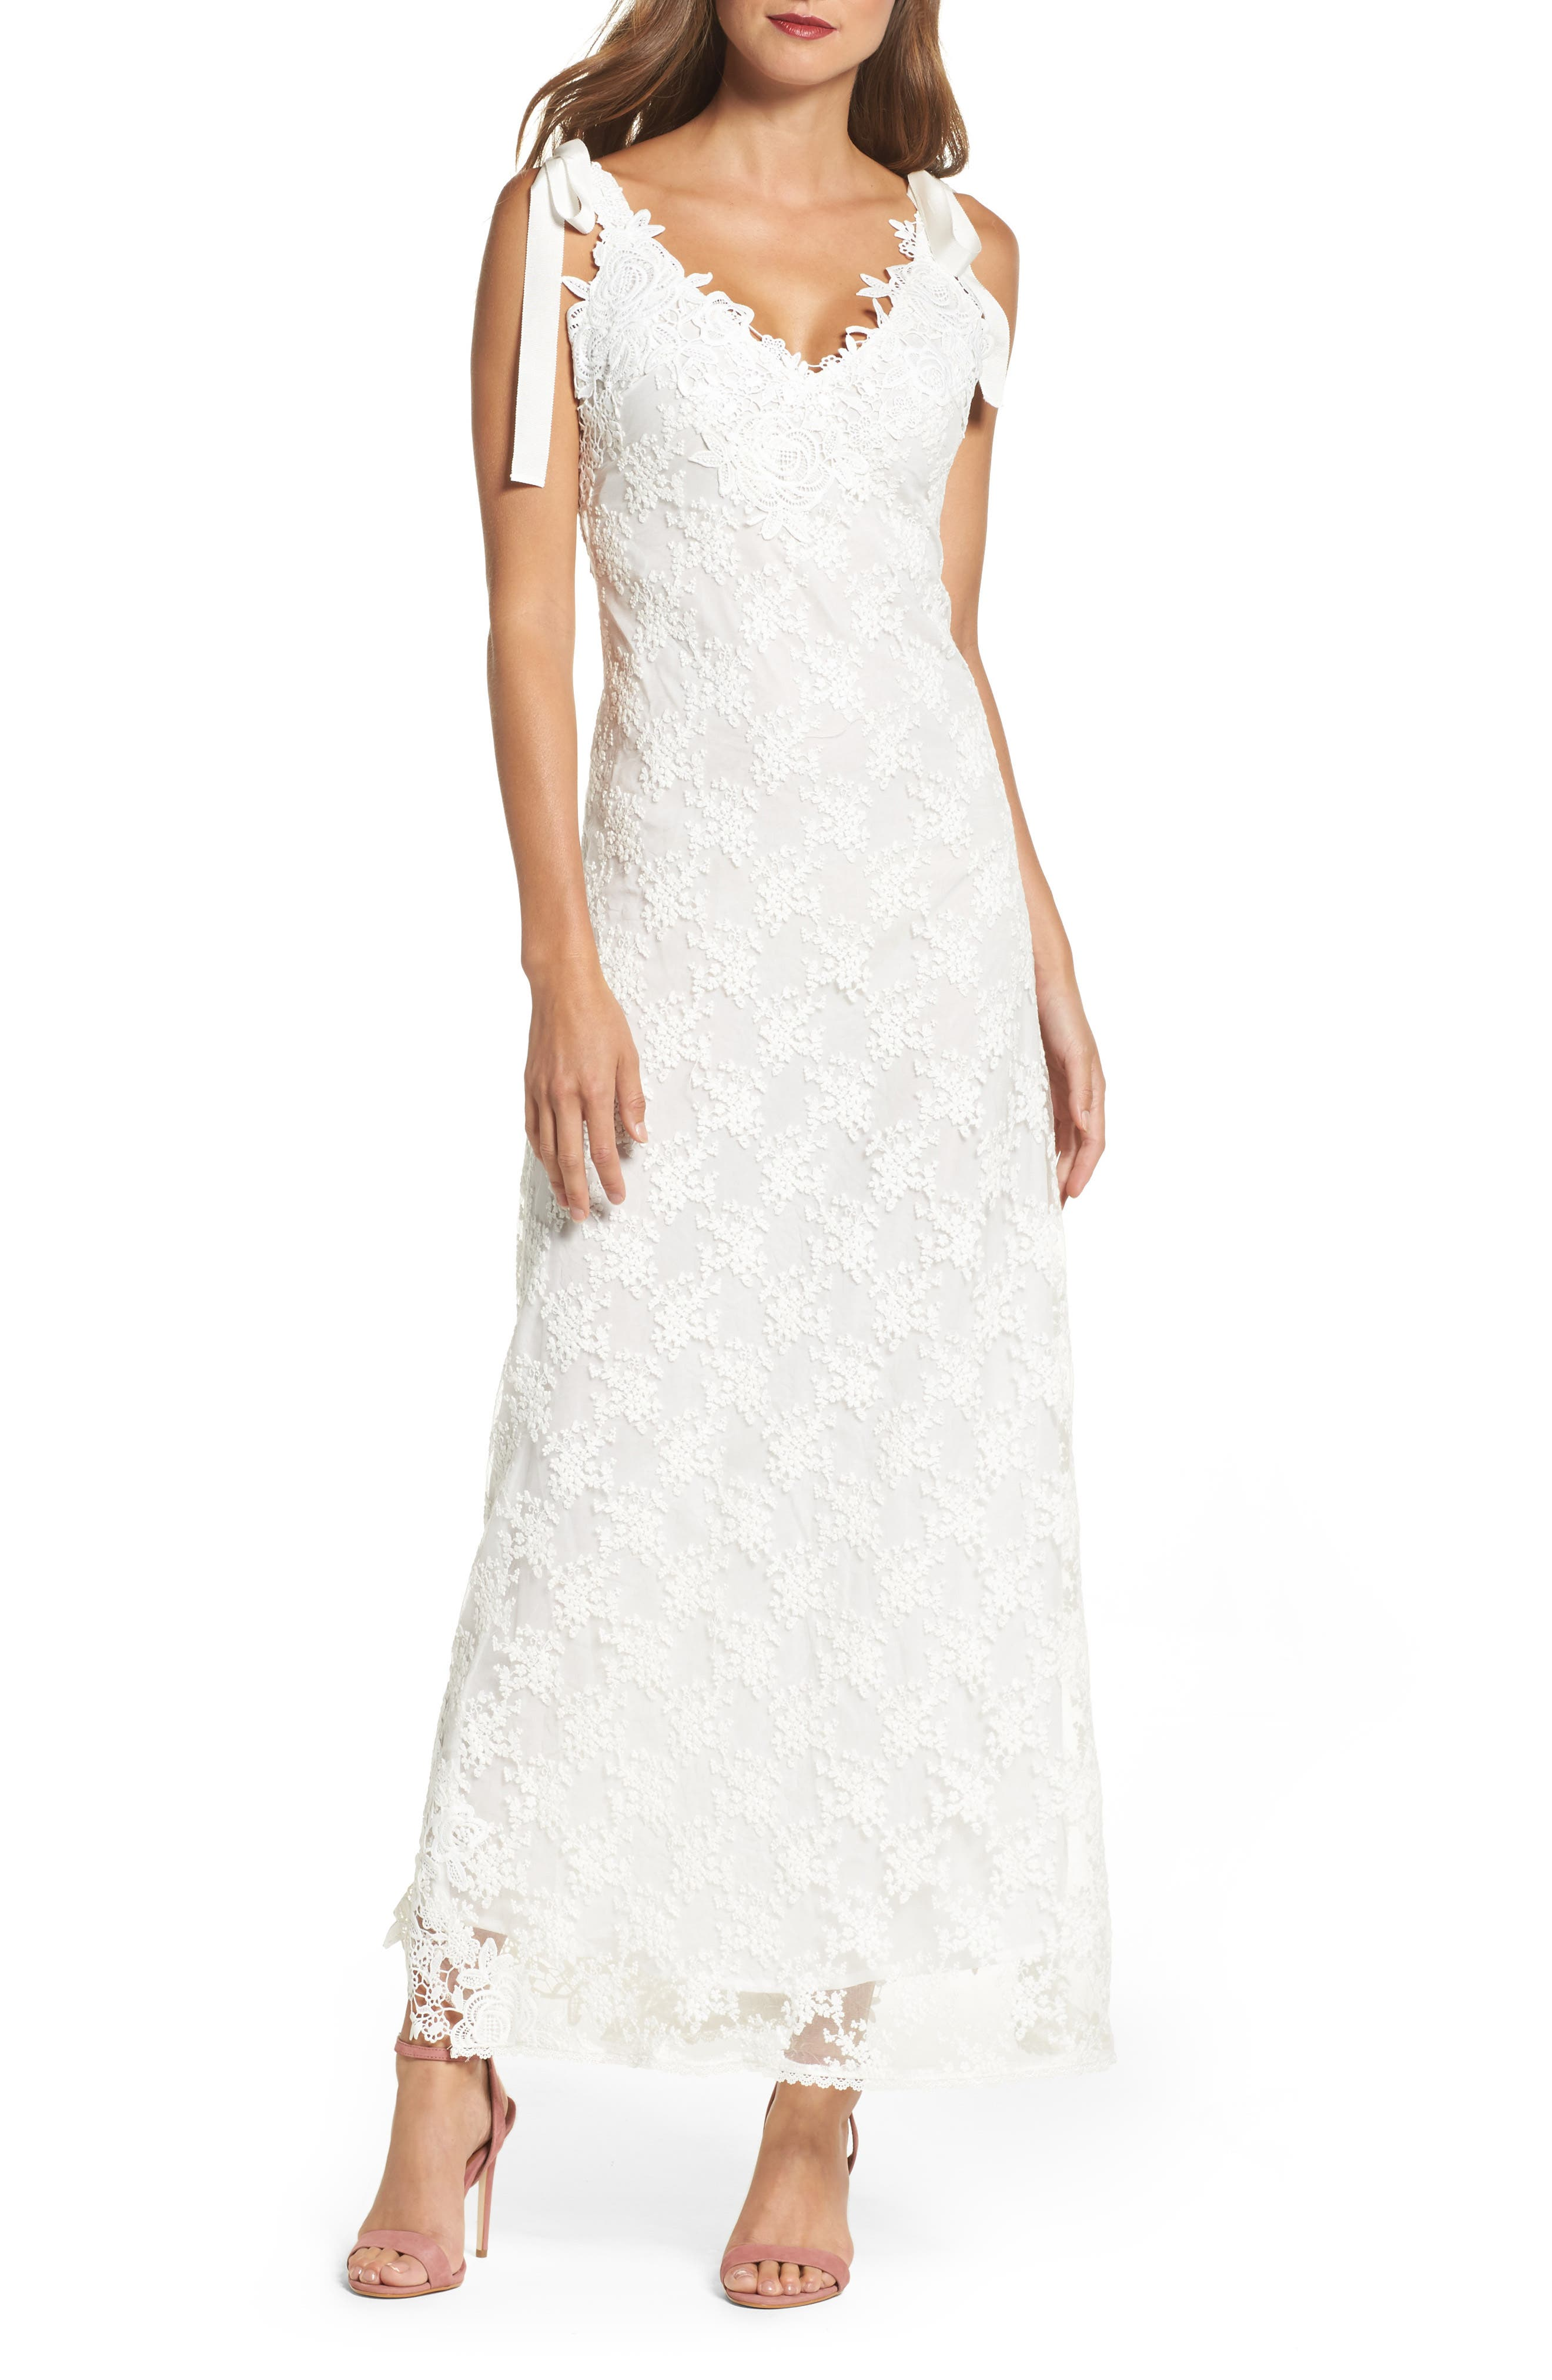 Alternate Image 1 Selected - Foxiedox August Shoulder Tie Lace Maxi Dress